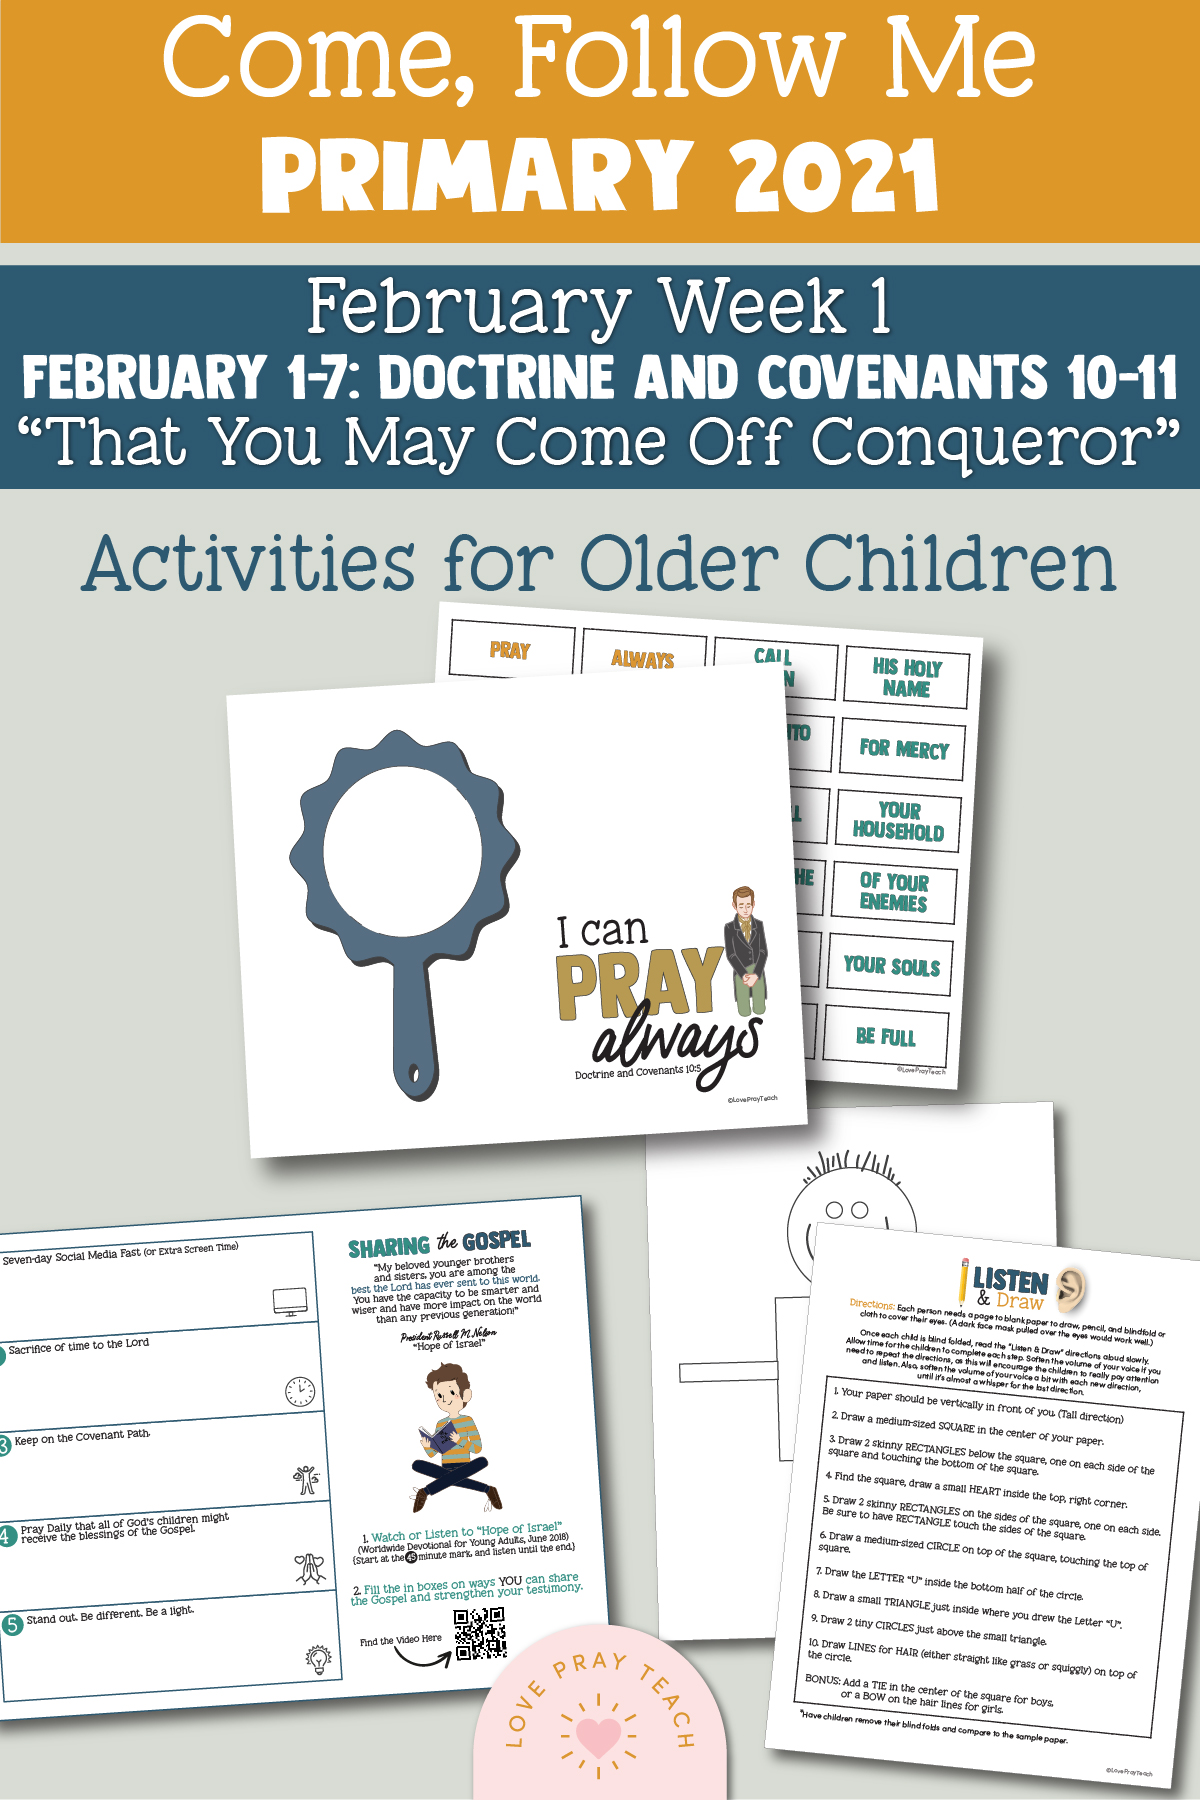 """Come, Follow Me for Primary 2021 February 1-7 Doctrine and Covenants 10-11 """"That You May Come Off Conqueror"""" Printable Lesson Materials"""